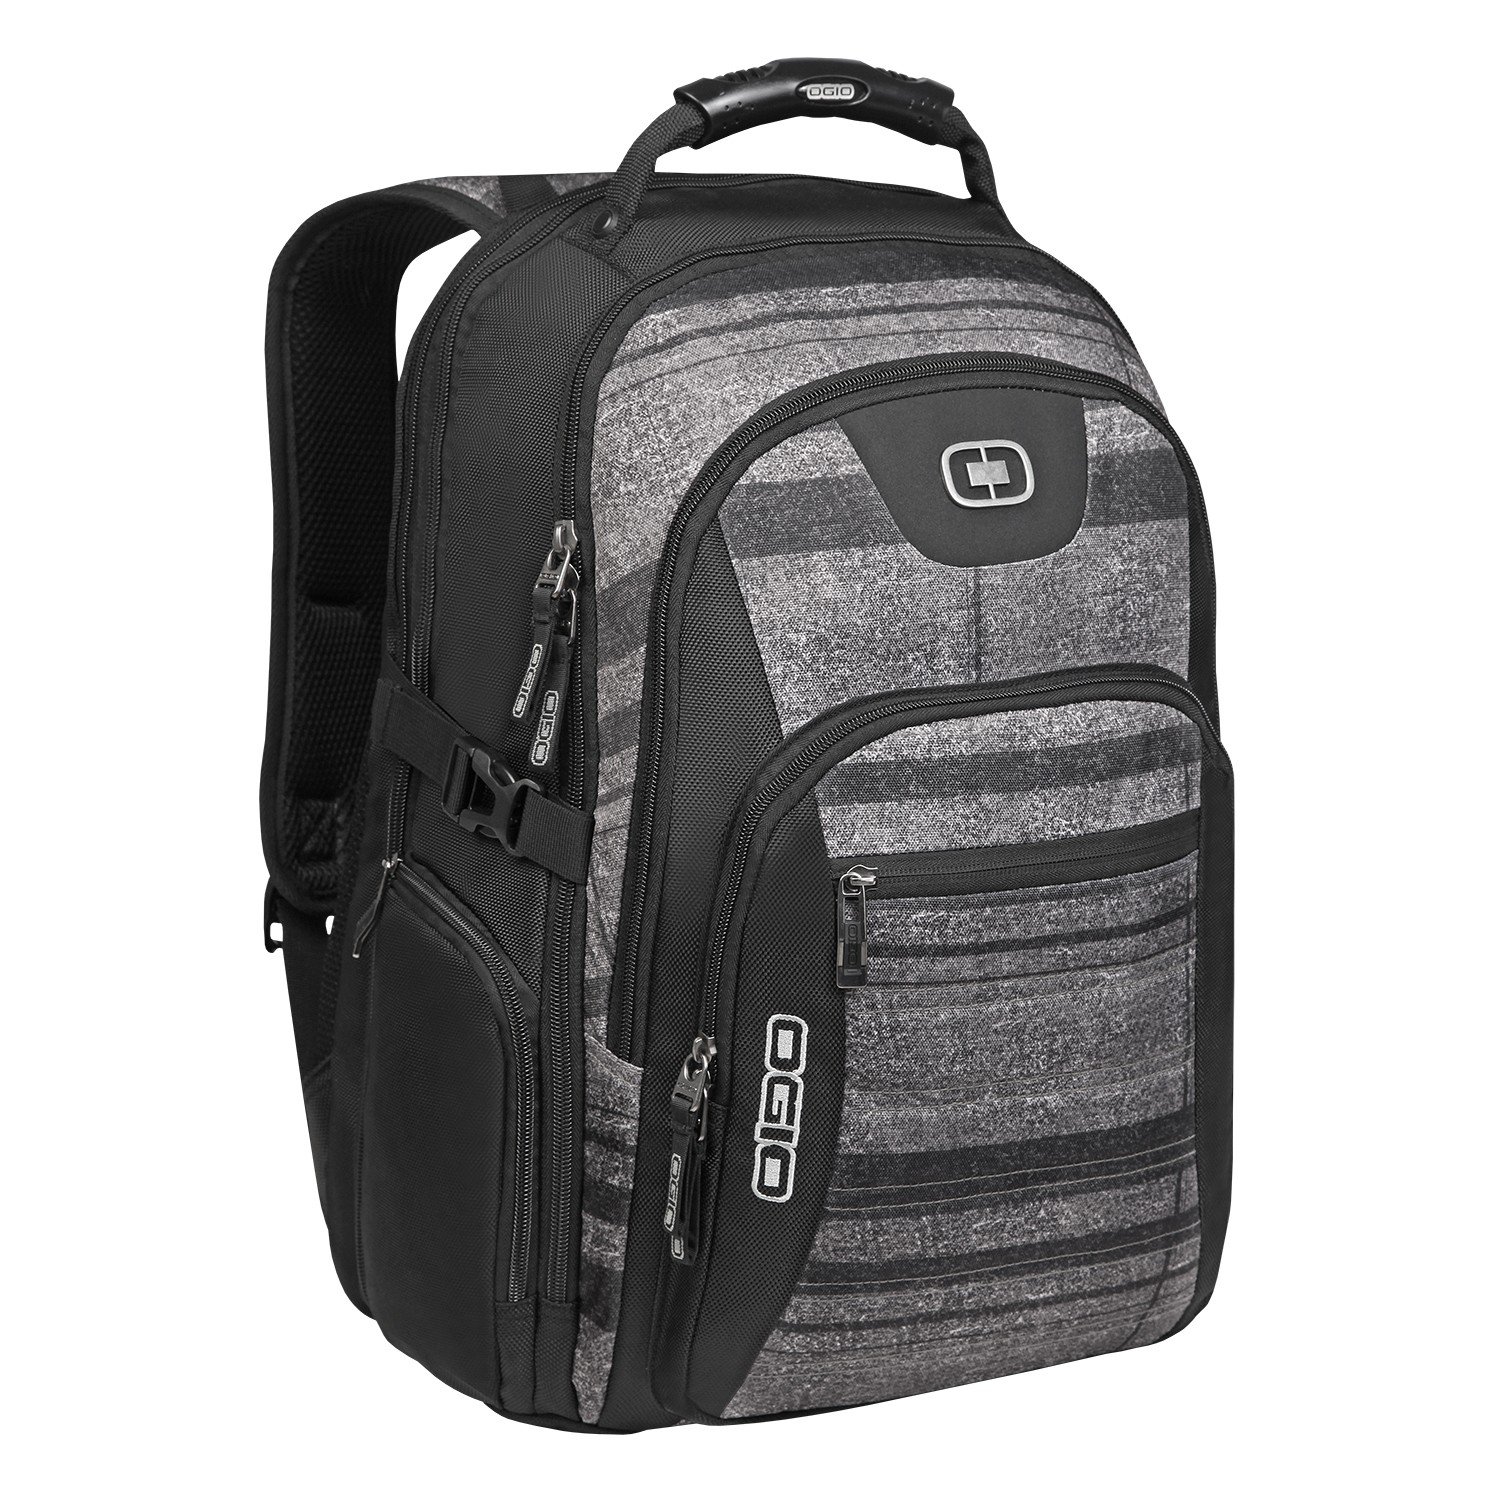 Ogio Urban 17 Laptop Backpack H5aOcRhE